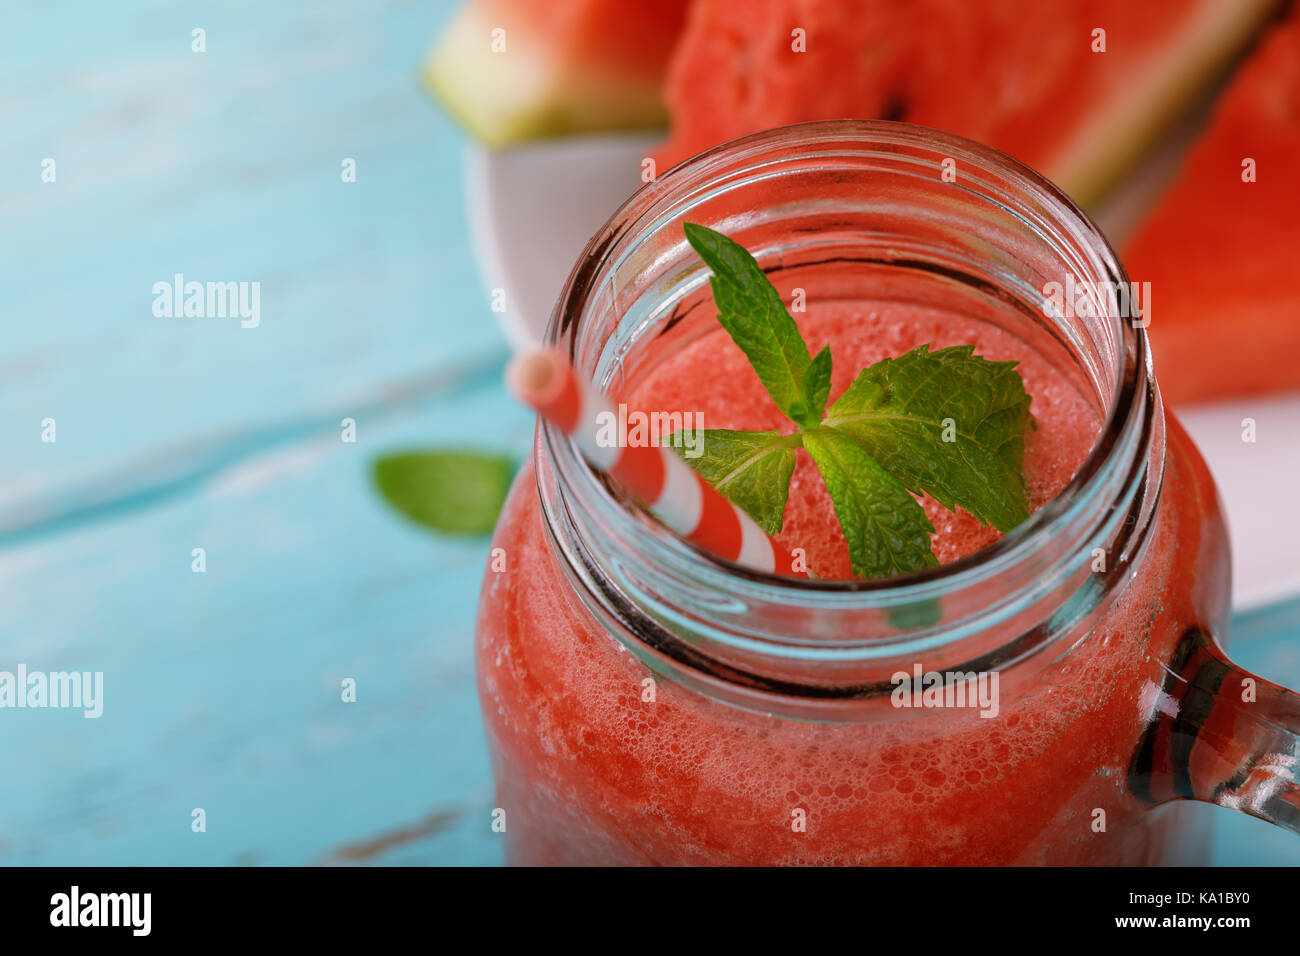 Freshly prepared smoothies from watermelon with mint leaves. Space for text - Stock Image